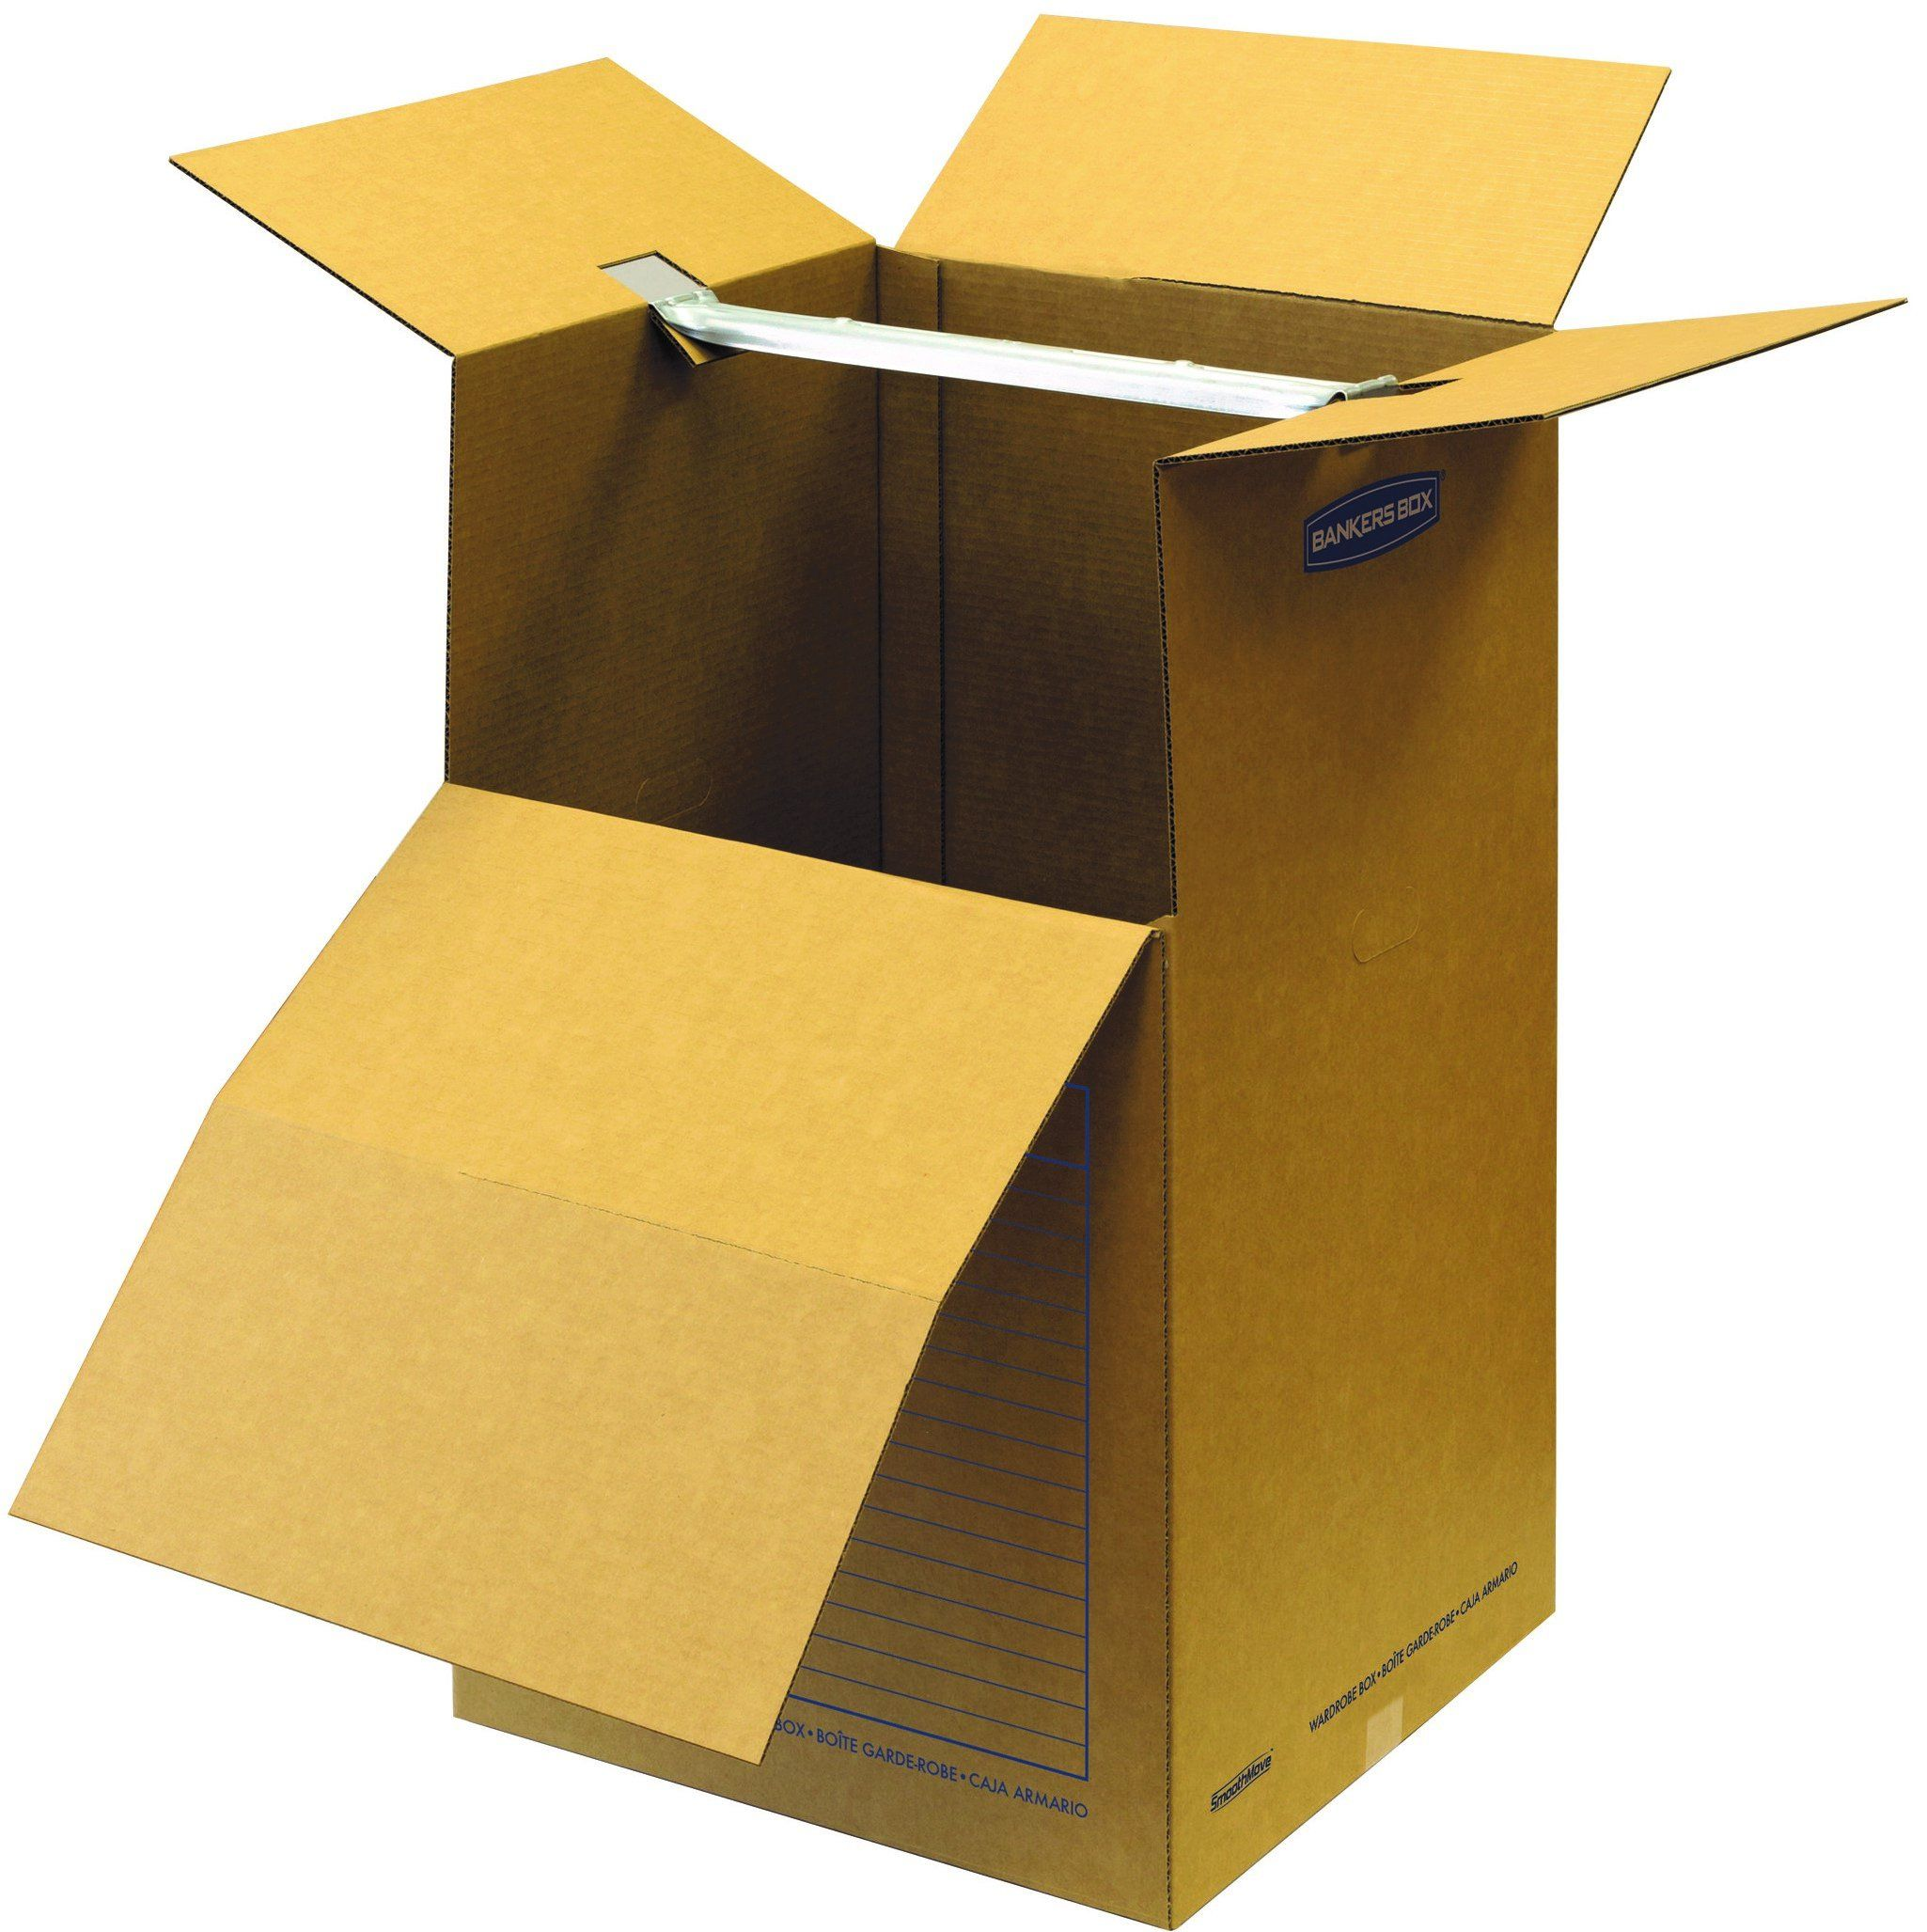 free carry medium dp tape office inches pack easy box moving com assembly x bankers classic handles amazon boxes wardrobe smoothmove